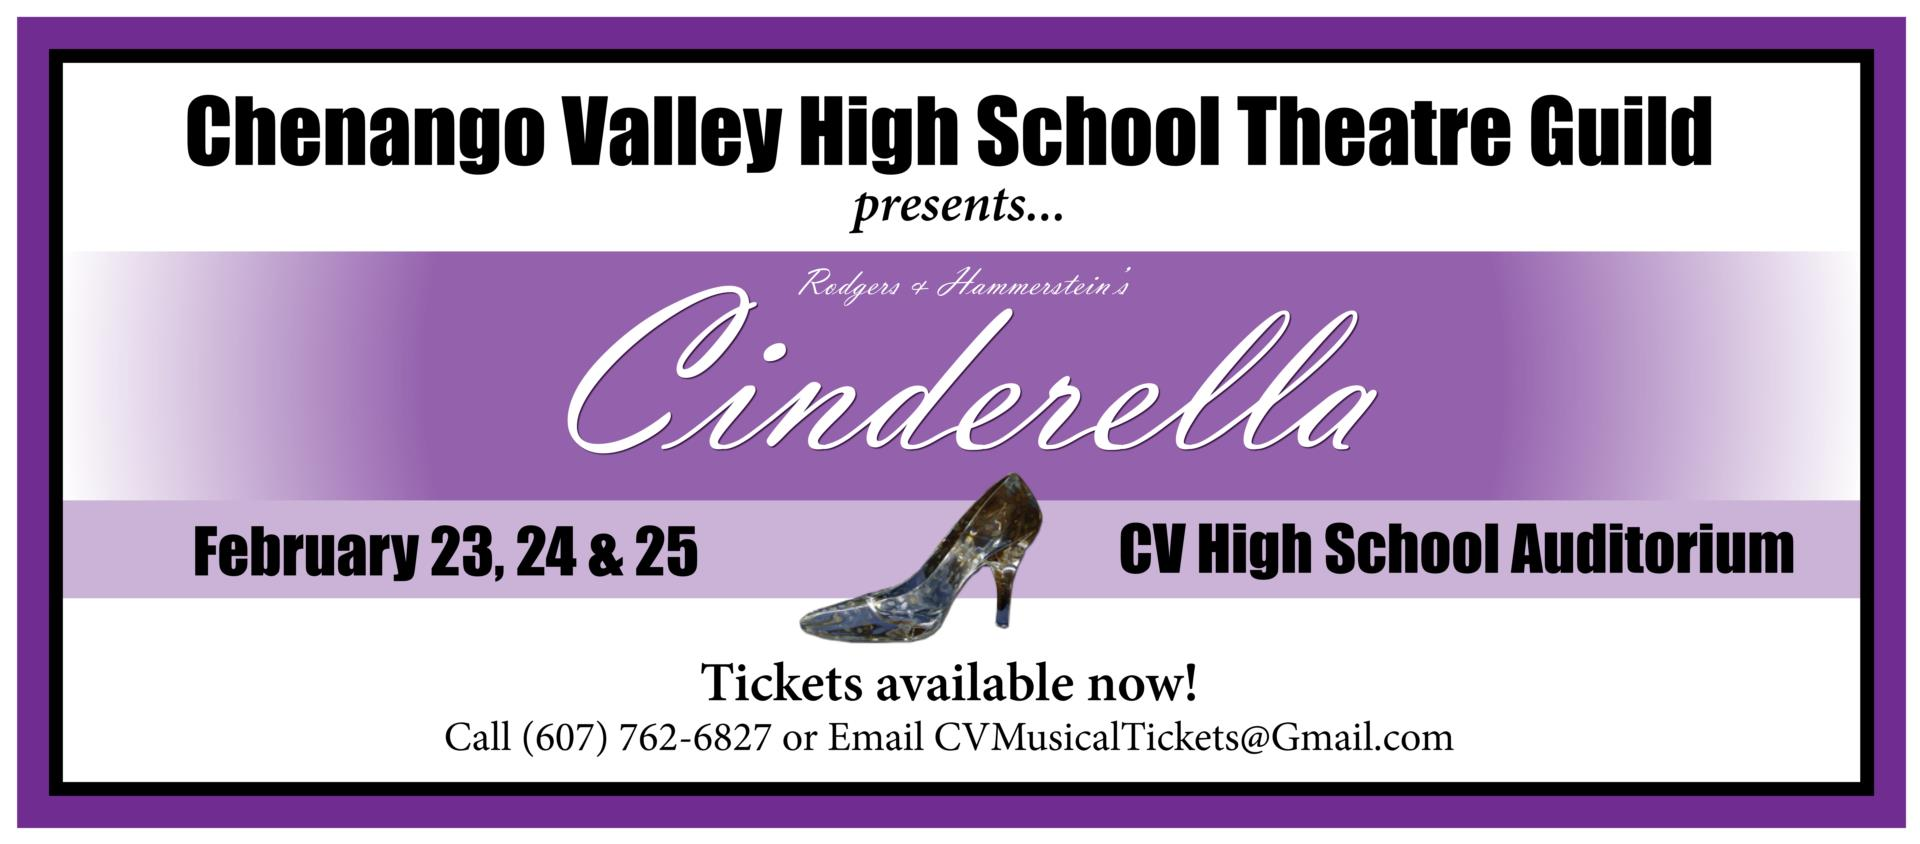 chenango valley high school theatre guild presents rodgers and hammersteins cinderella february 23 through 25 in the chenango valley high school auditorium tickets available call 7 6 2 - 6 8 2 7 or email CVMusicalTickets@gmail.com